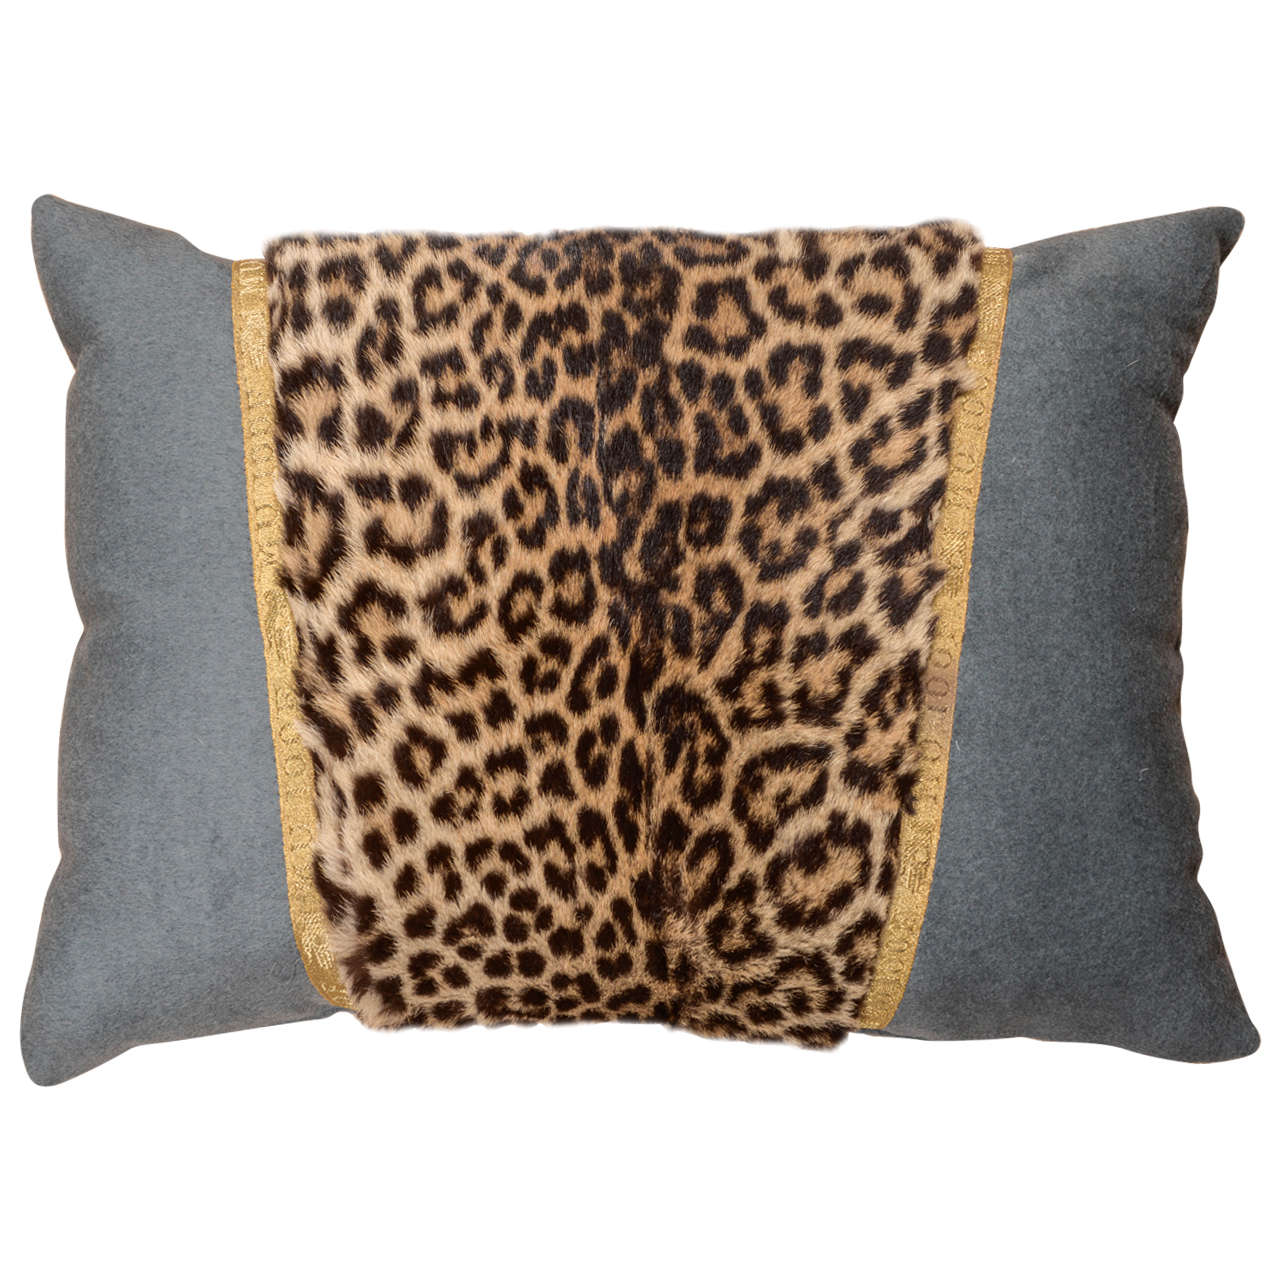 Early 20th-century Leopard skin pillow